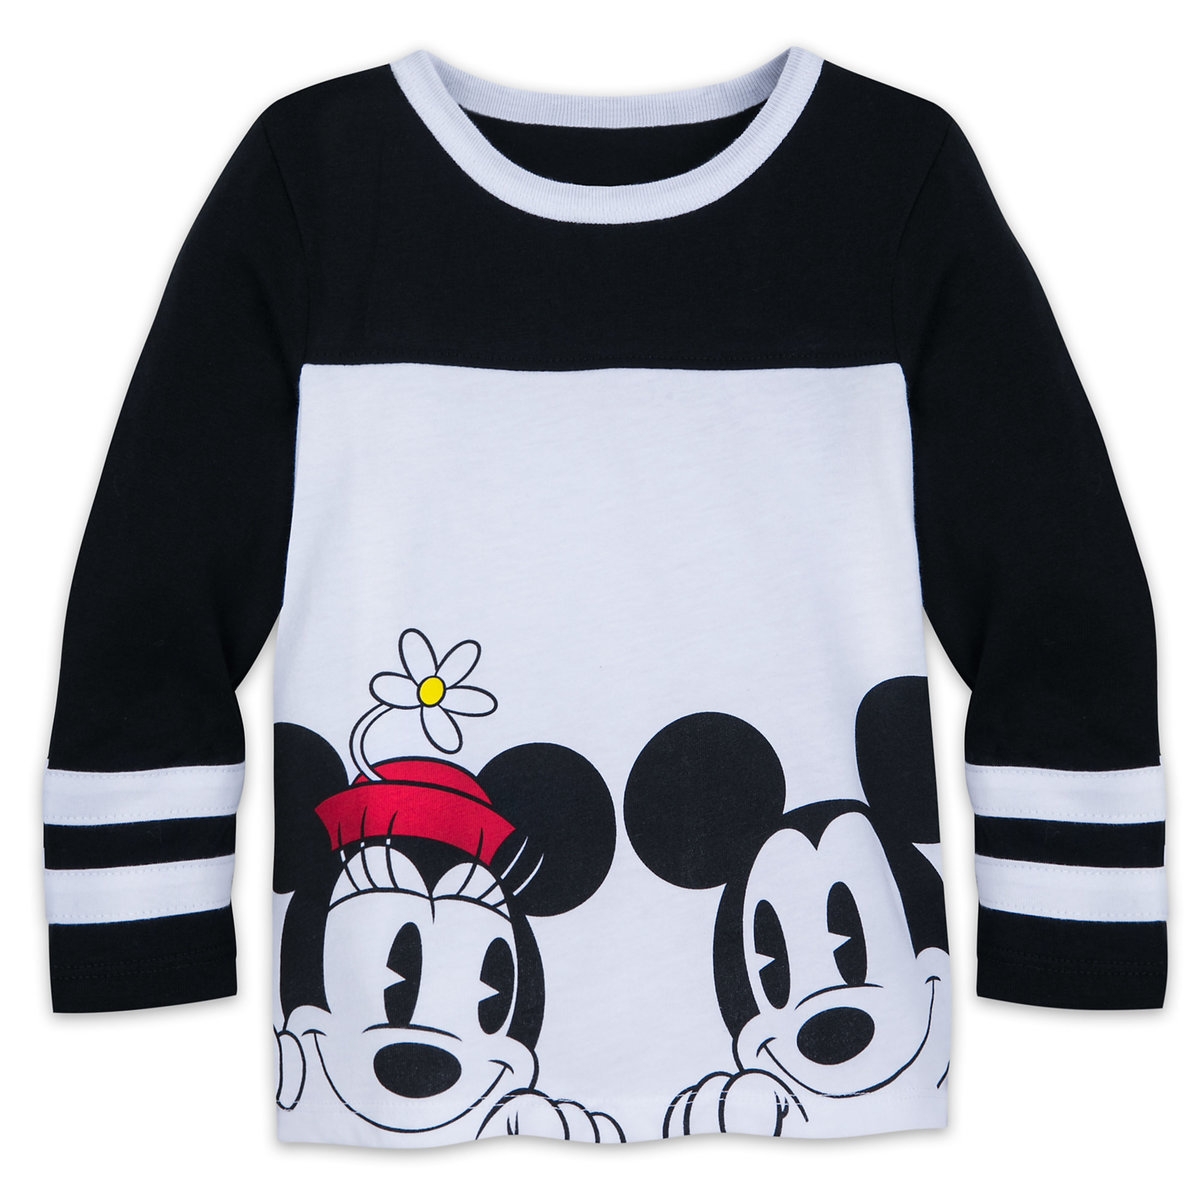 77e30379 Product Image of Mickey and Mickey Mouse Long Sleeve Shirt for Kids # 1